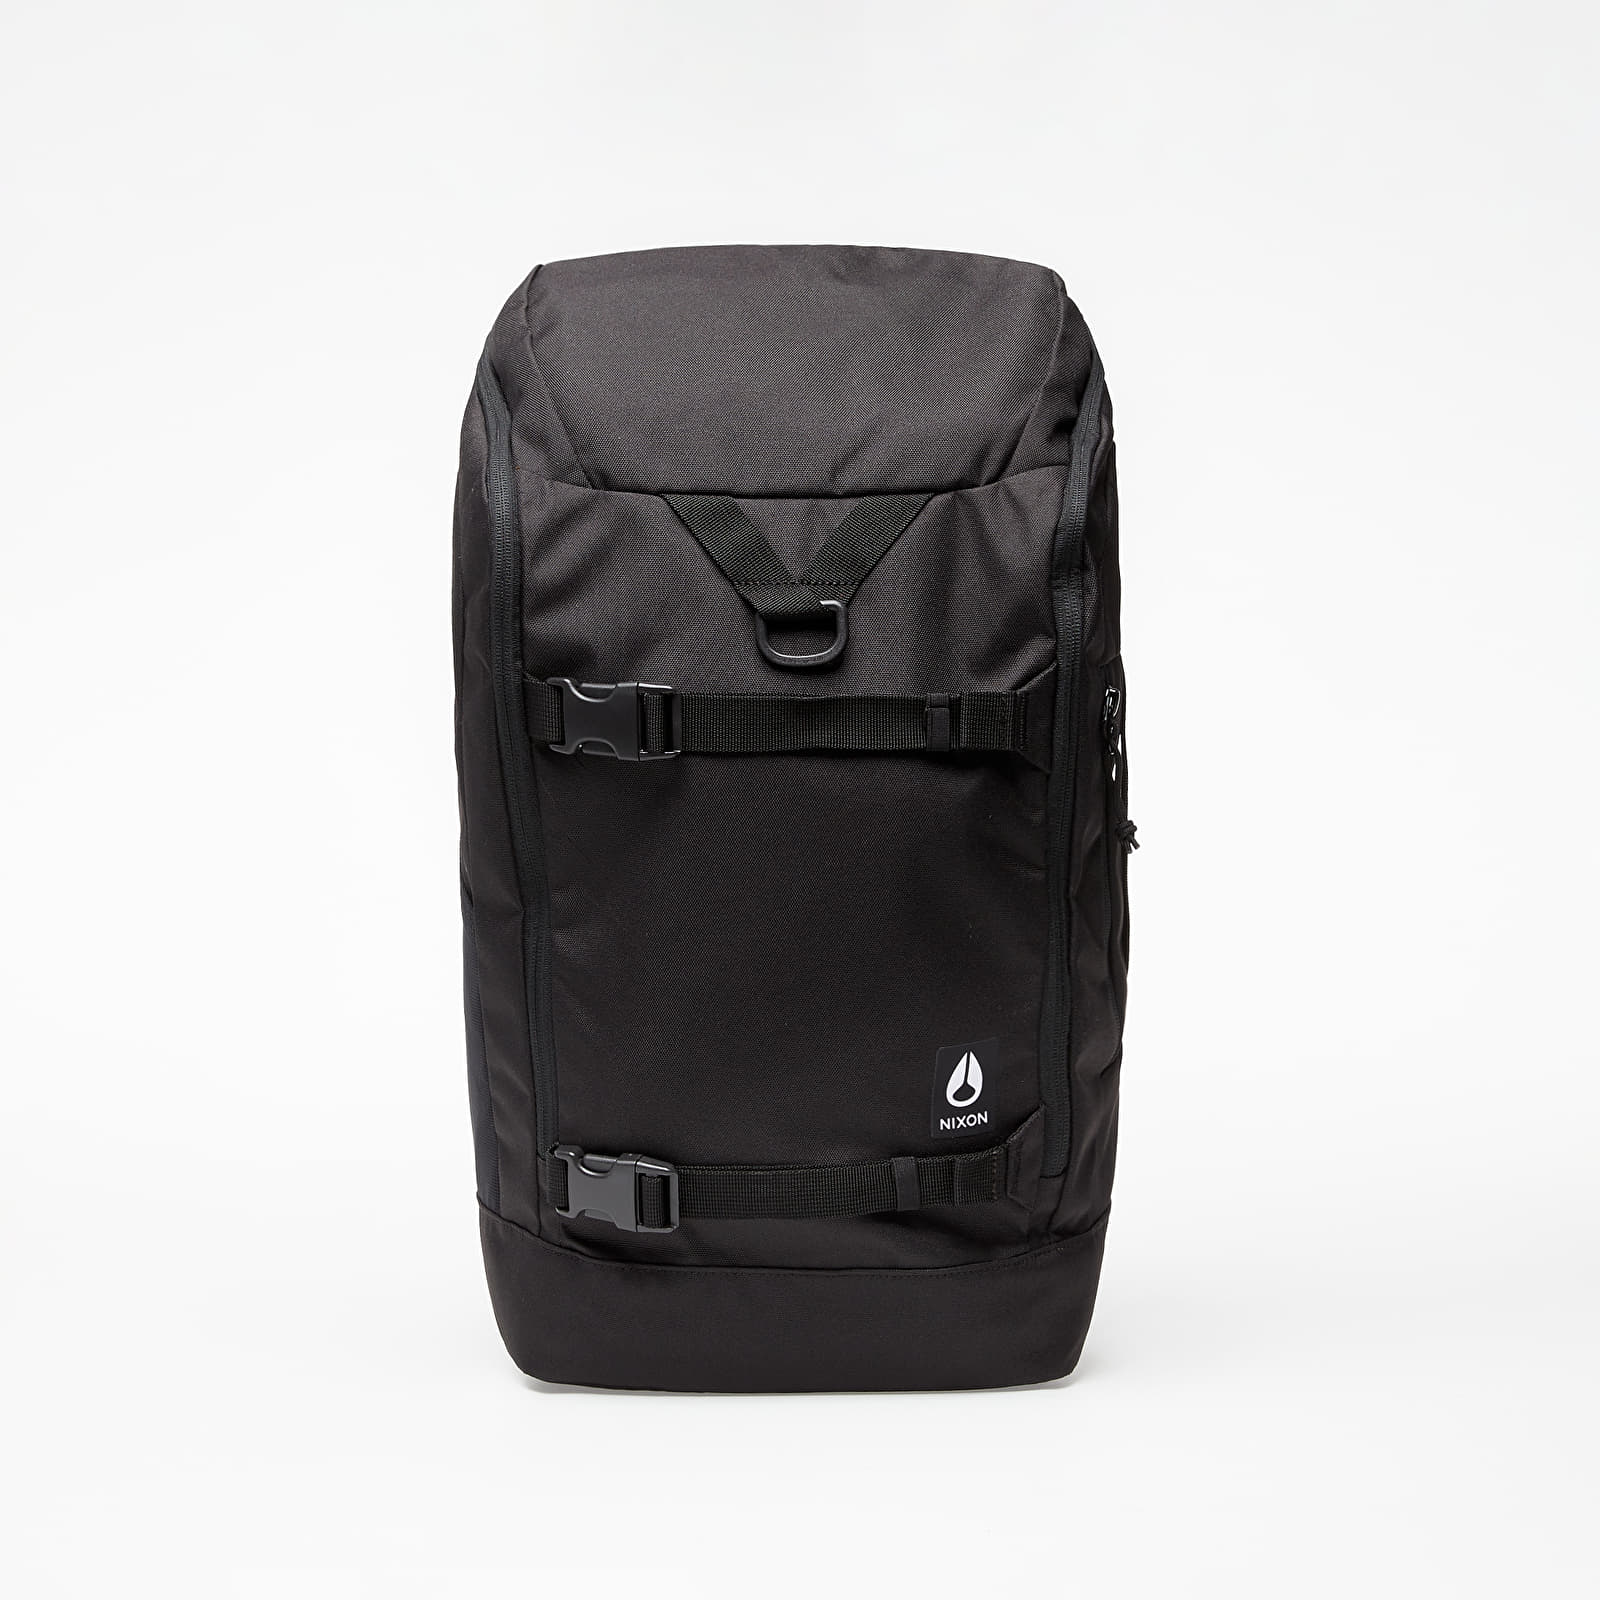 Batohy Nixon Hauler 25L Backpack Black